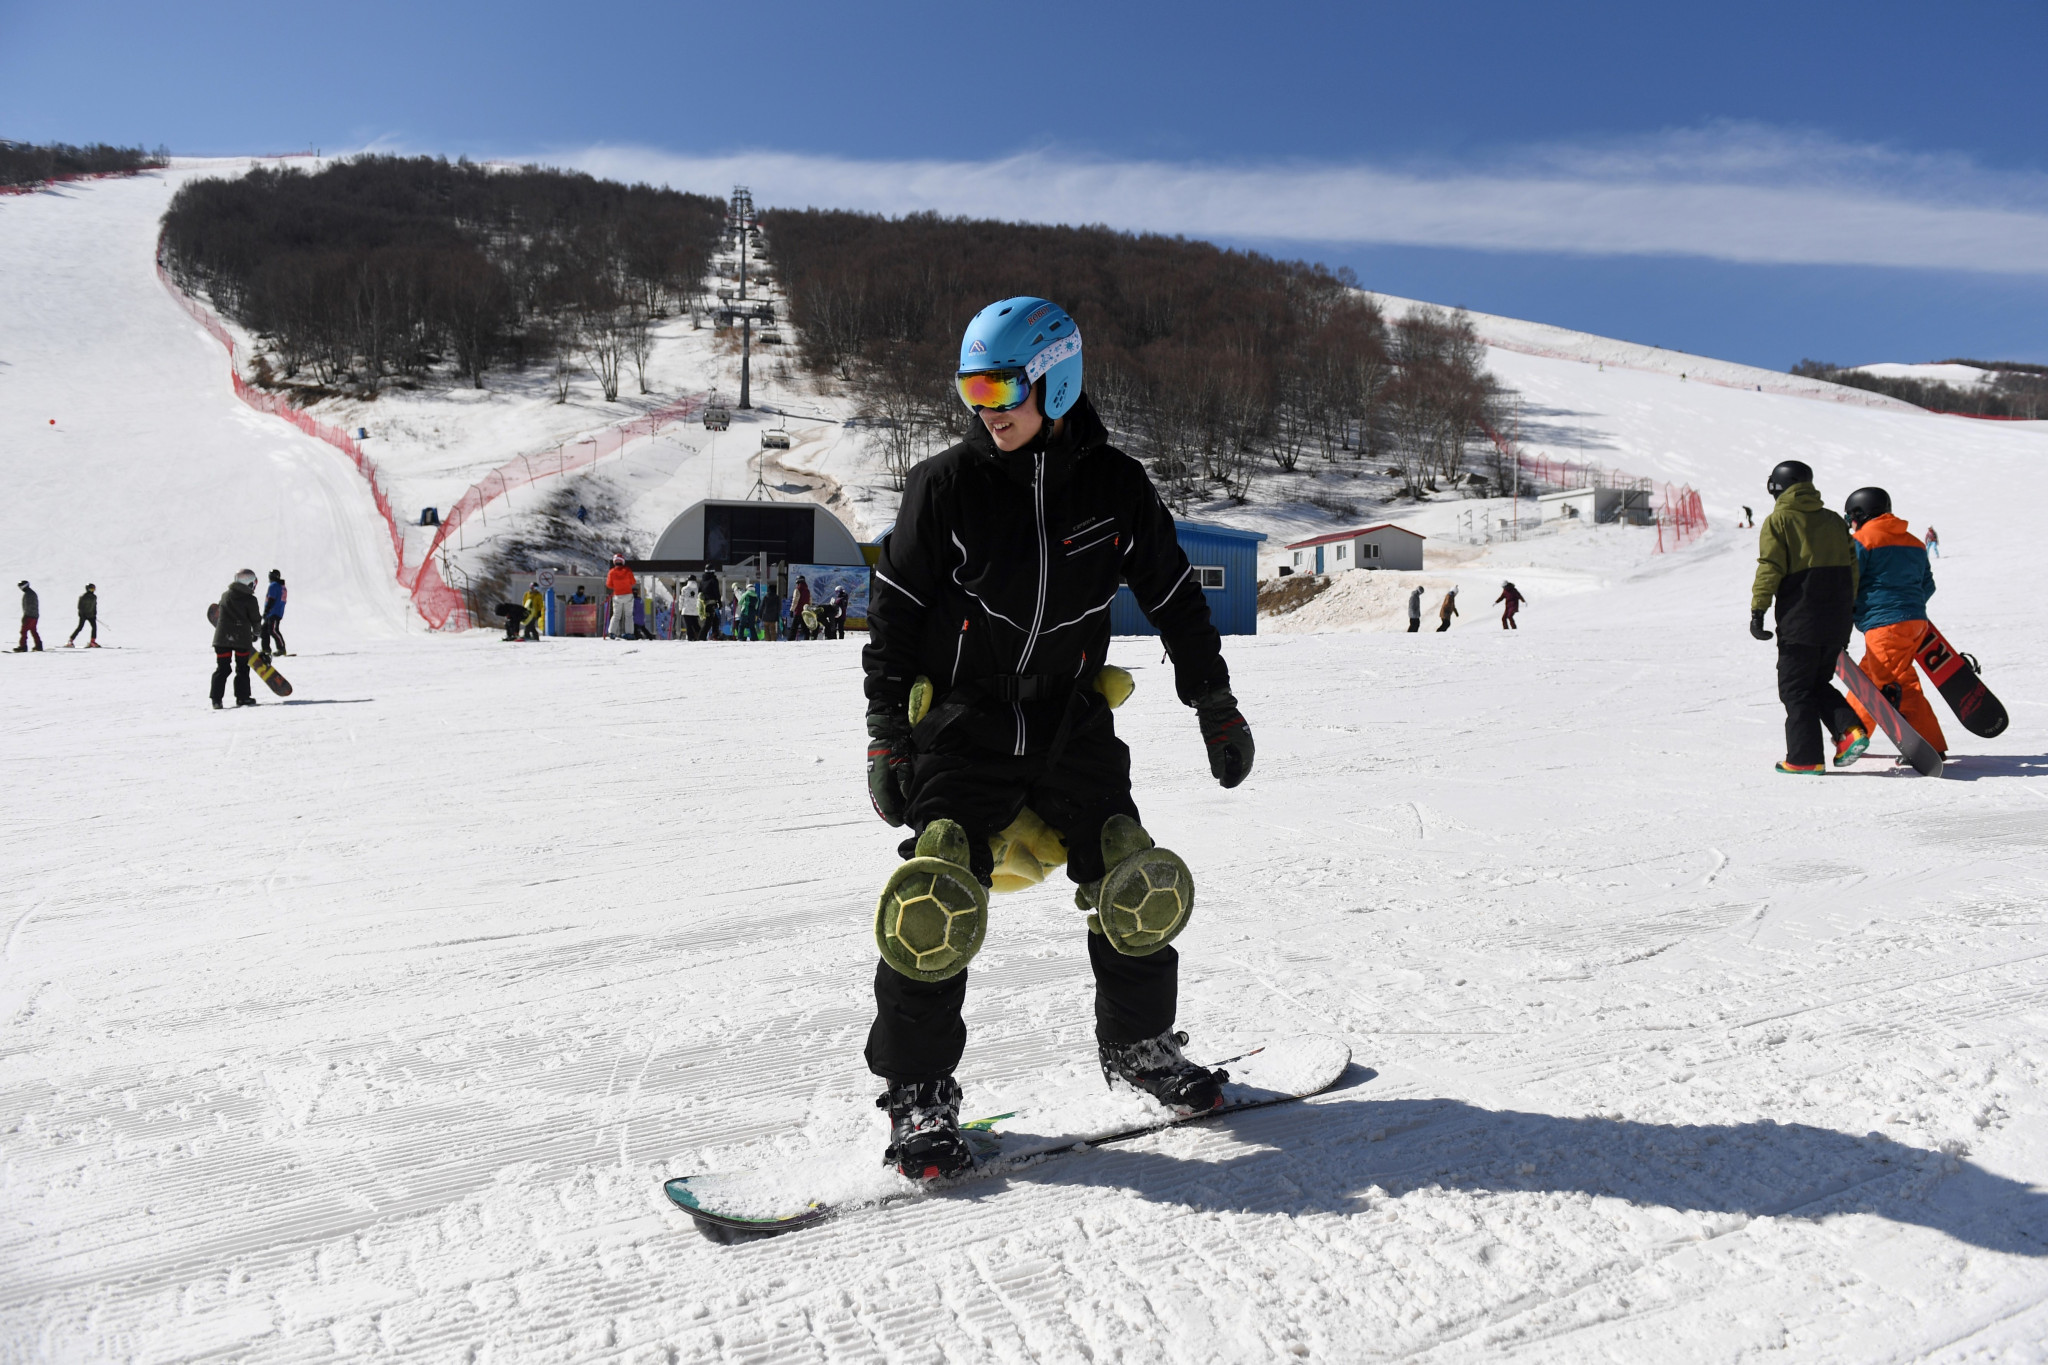 The Chinese Government are aiming to have 300 million snow sport enthusiasts by the Beijing 2022 Winter Games, with the Ecole Française de Ski ski academy in China hoping to contribute to this number ©Getty Images